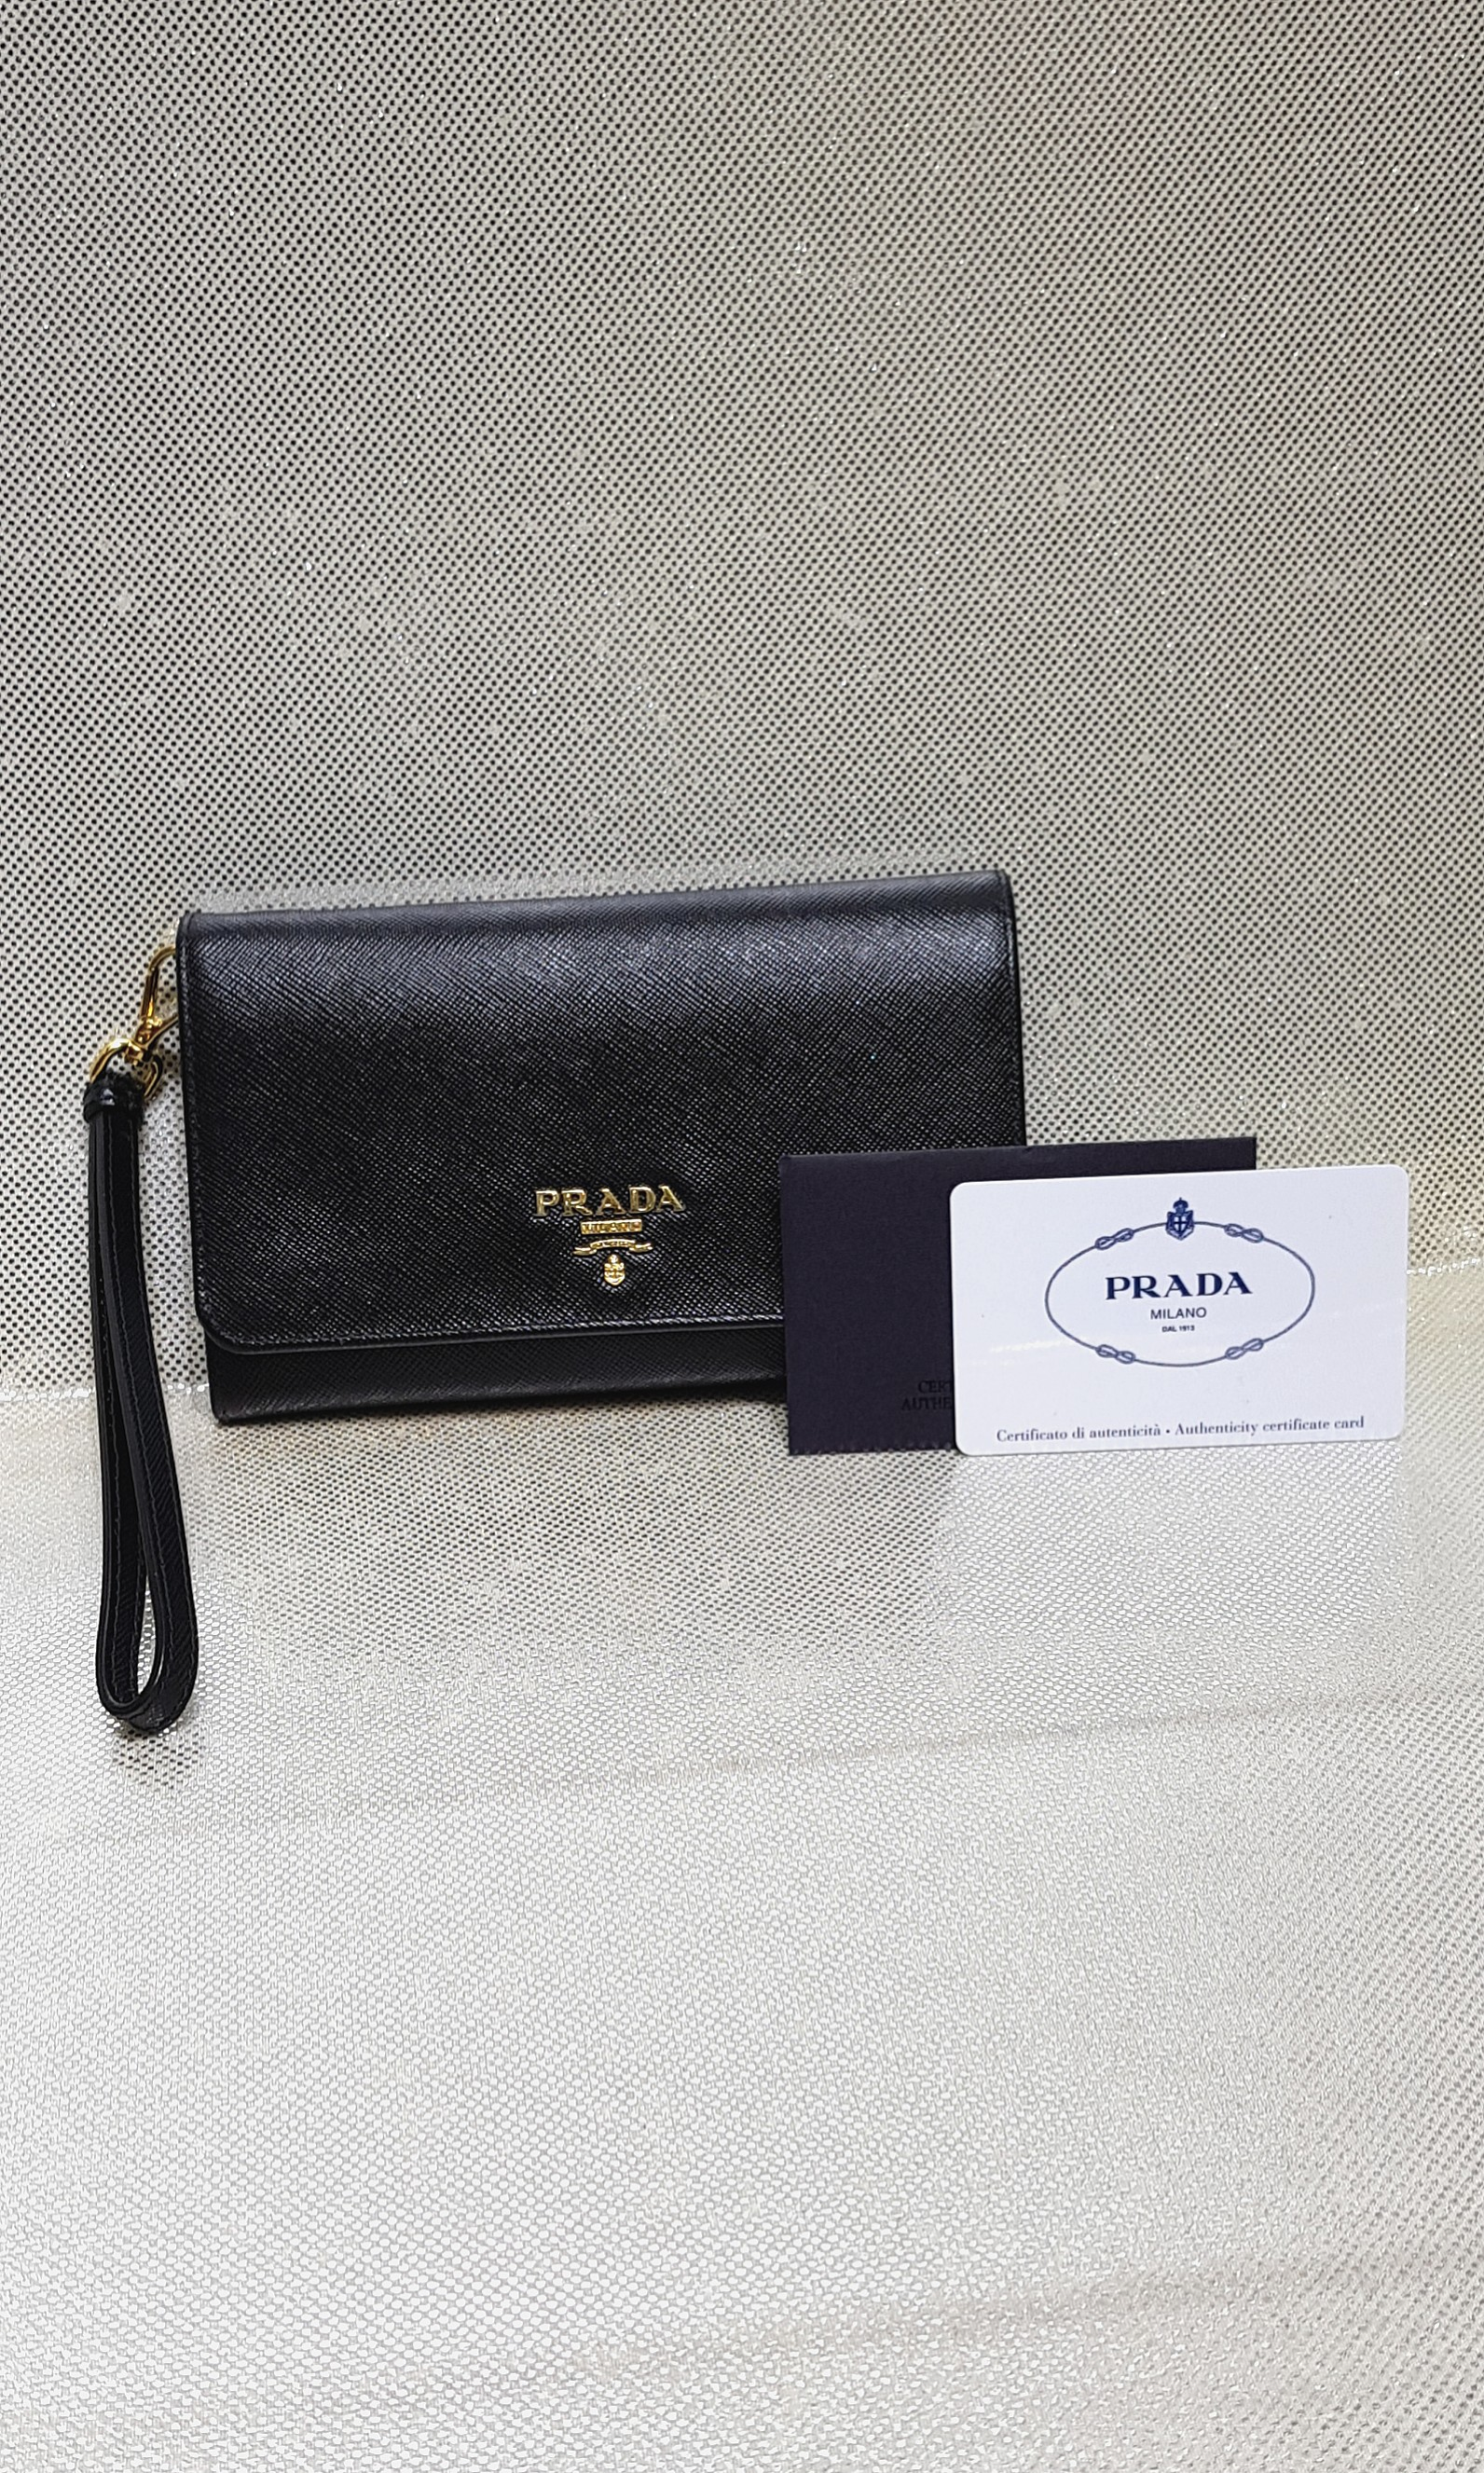 4fdc9d1d9d2a Authentic Prada Black Saffiano Wristlet Wallet, Luxury, Bags & Wallets,  Wallets on Carousell